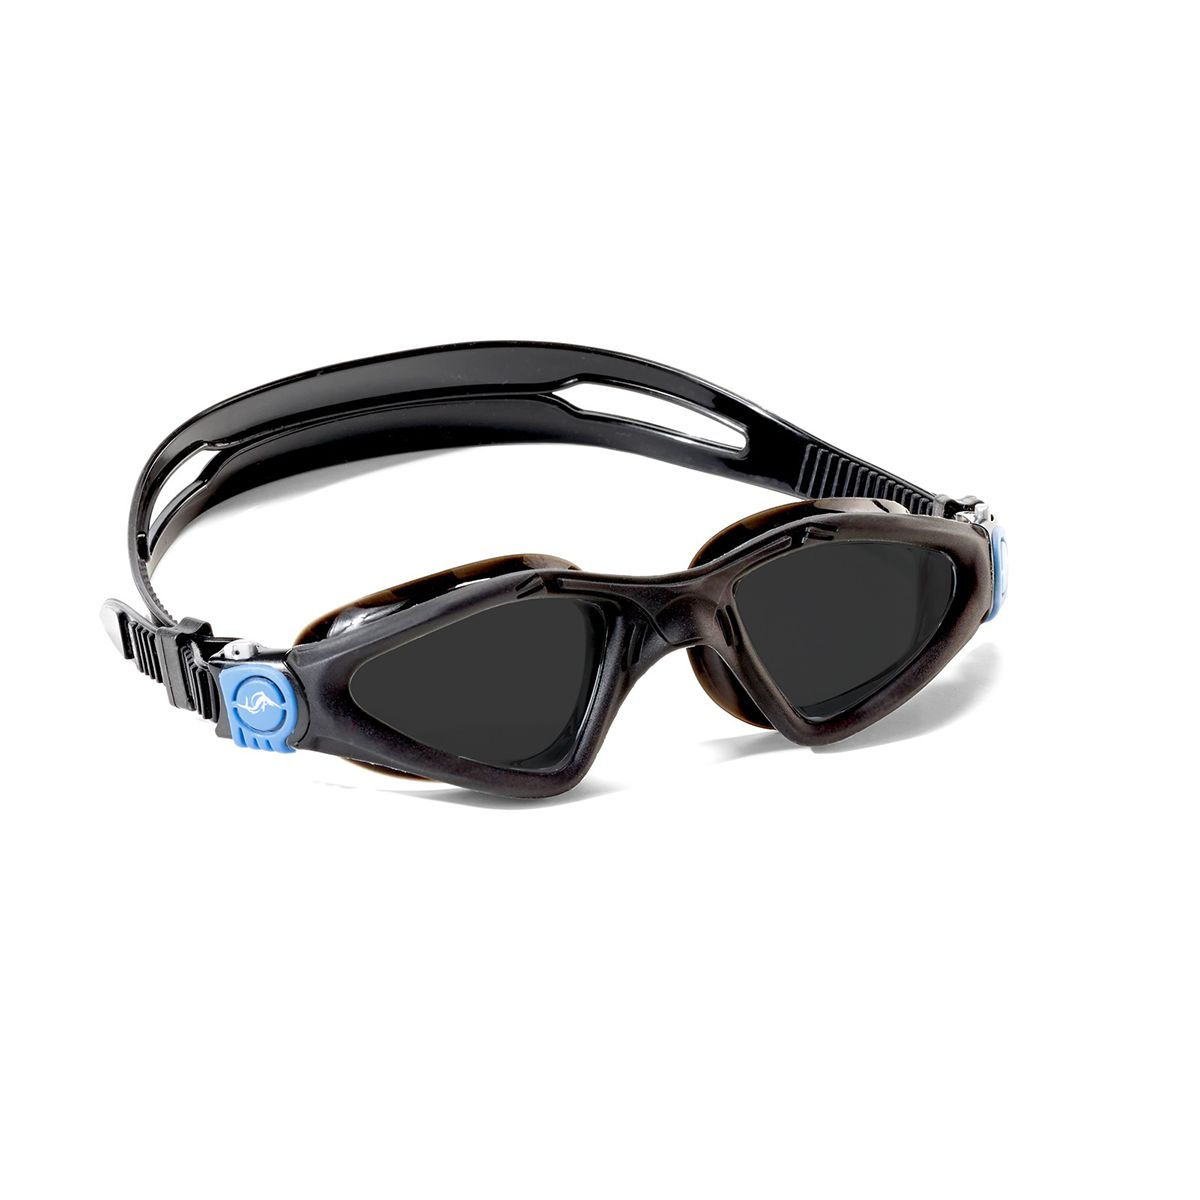 Typhoon swimming goggles